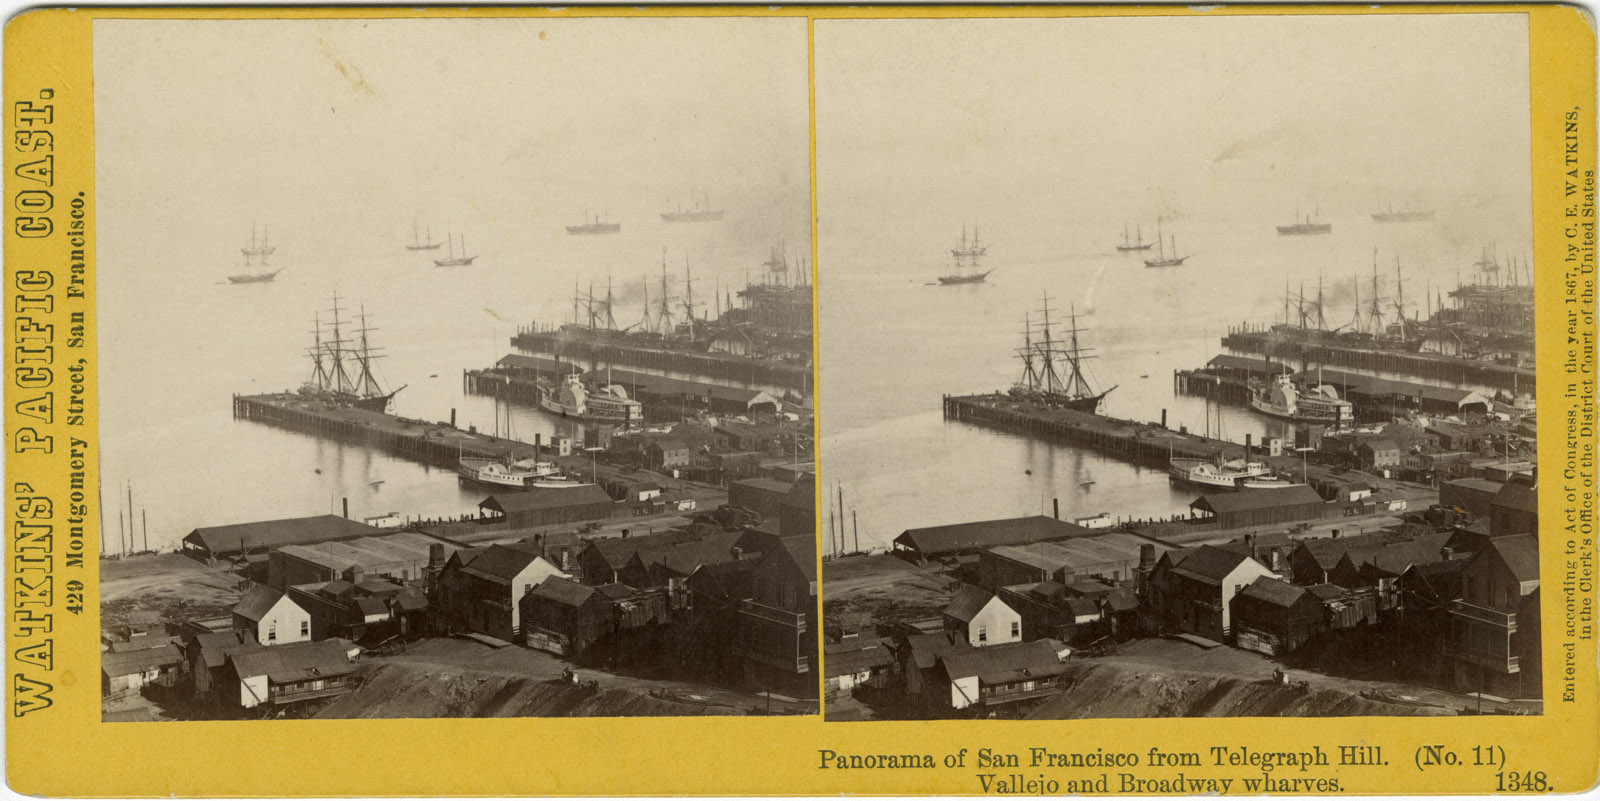 Watkins #1348 - Panorama of San Francisco from Telegraph Hill (No. 11). Vallejo and Broadway Wharves.